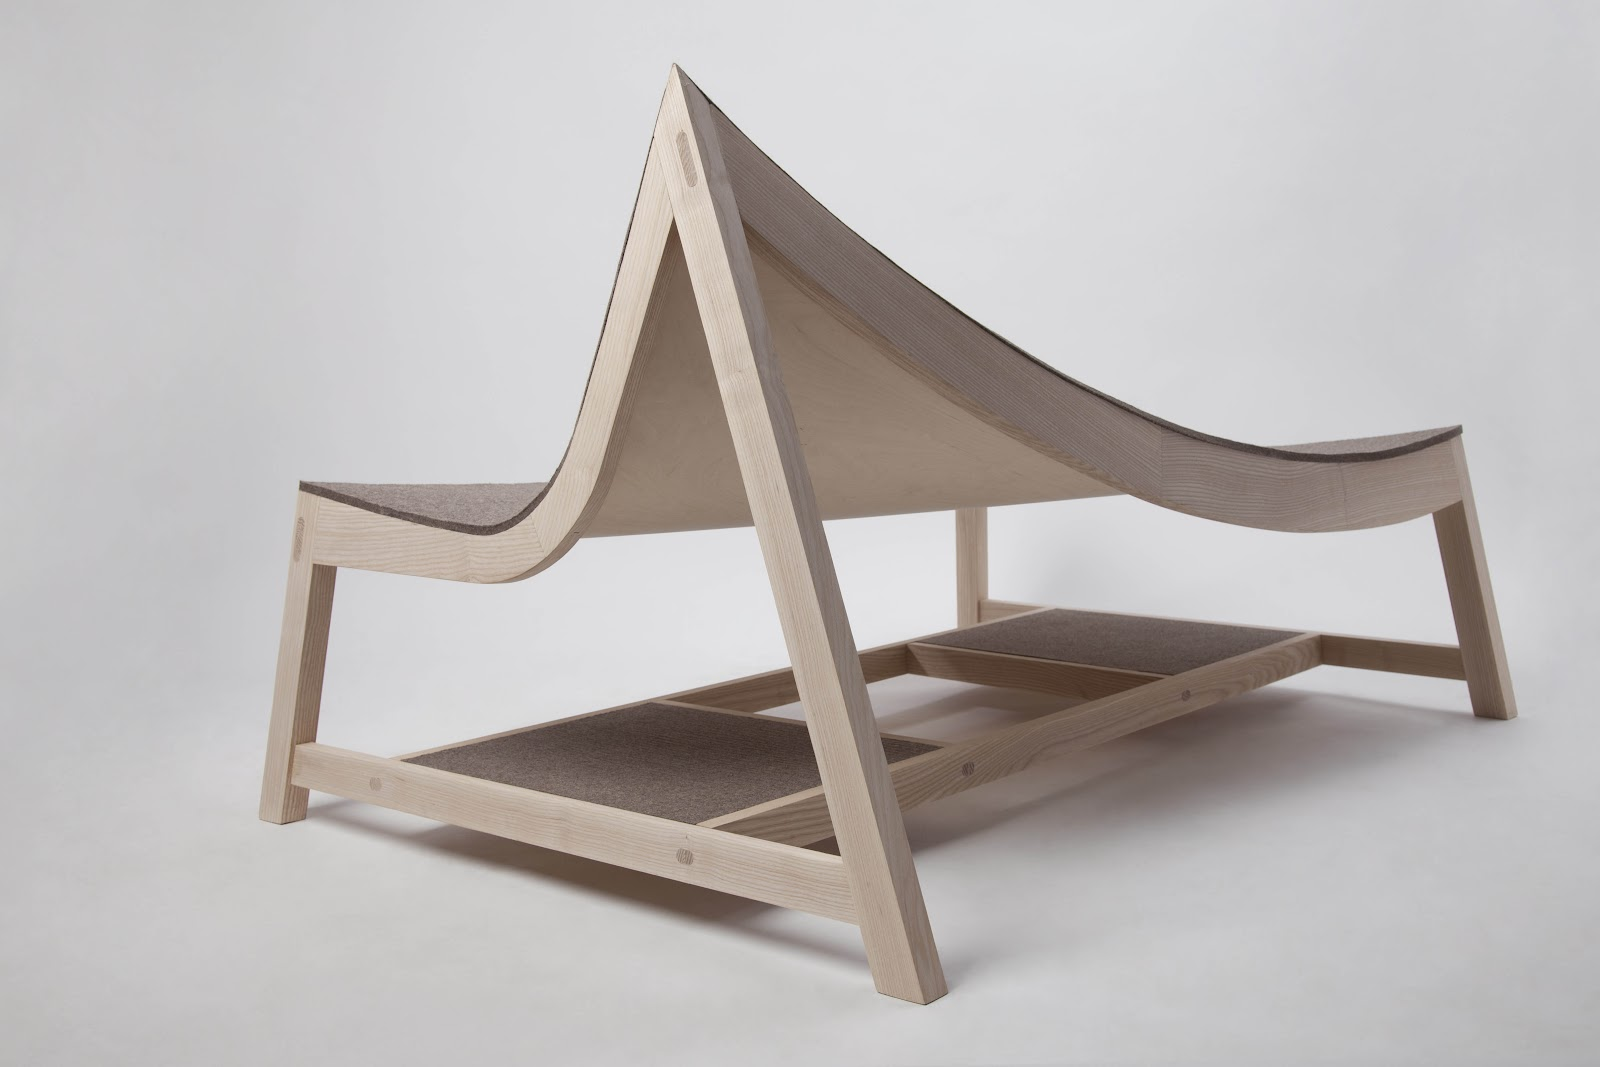 awesome-design-ideas-Experimental-Seating-Furniture-Tamas-Bozsik-5